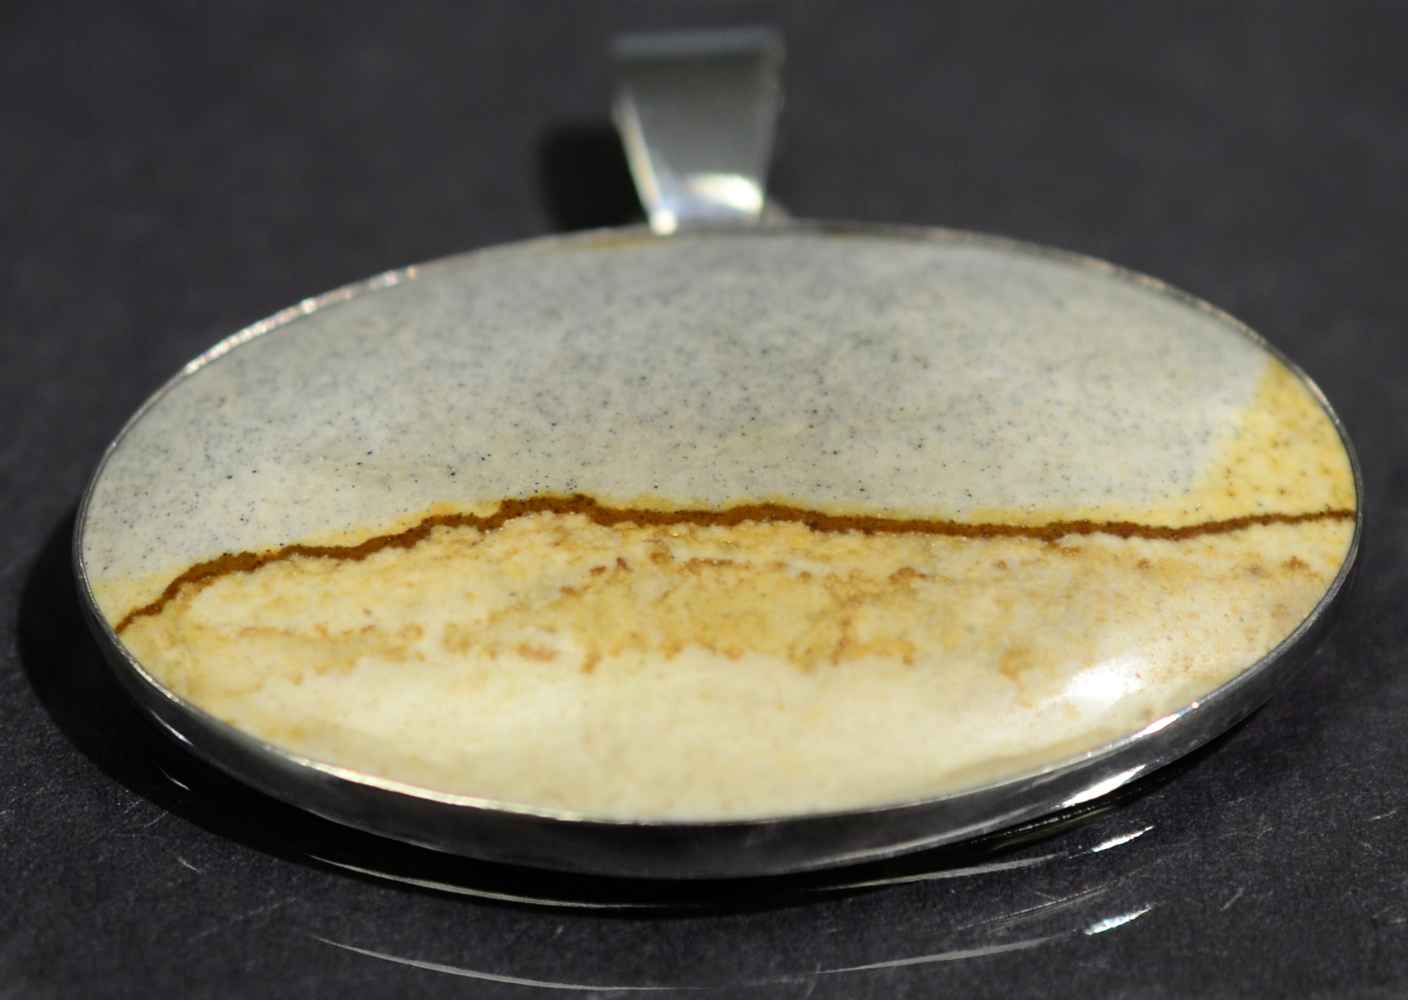 handmade McDermitt jasper and sterling silver oval pendant by Dale Repp